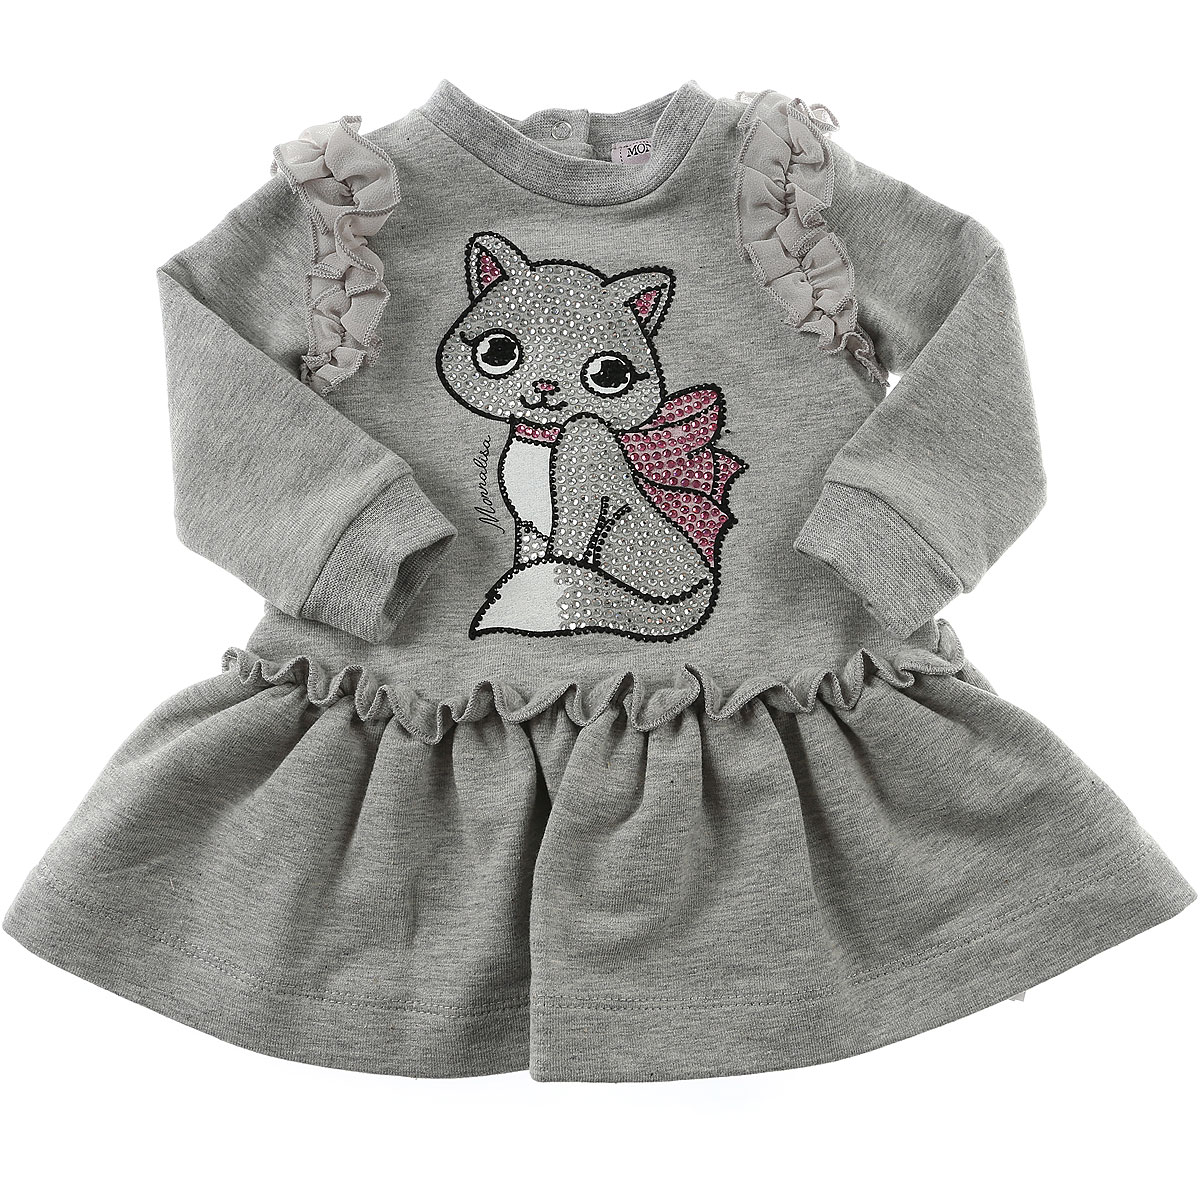 Monnalisa Baby Dress for Girls On Sale in Outlet, Grey, Cotton, 2019, 6M 9M